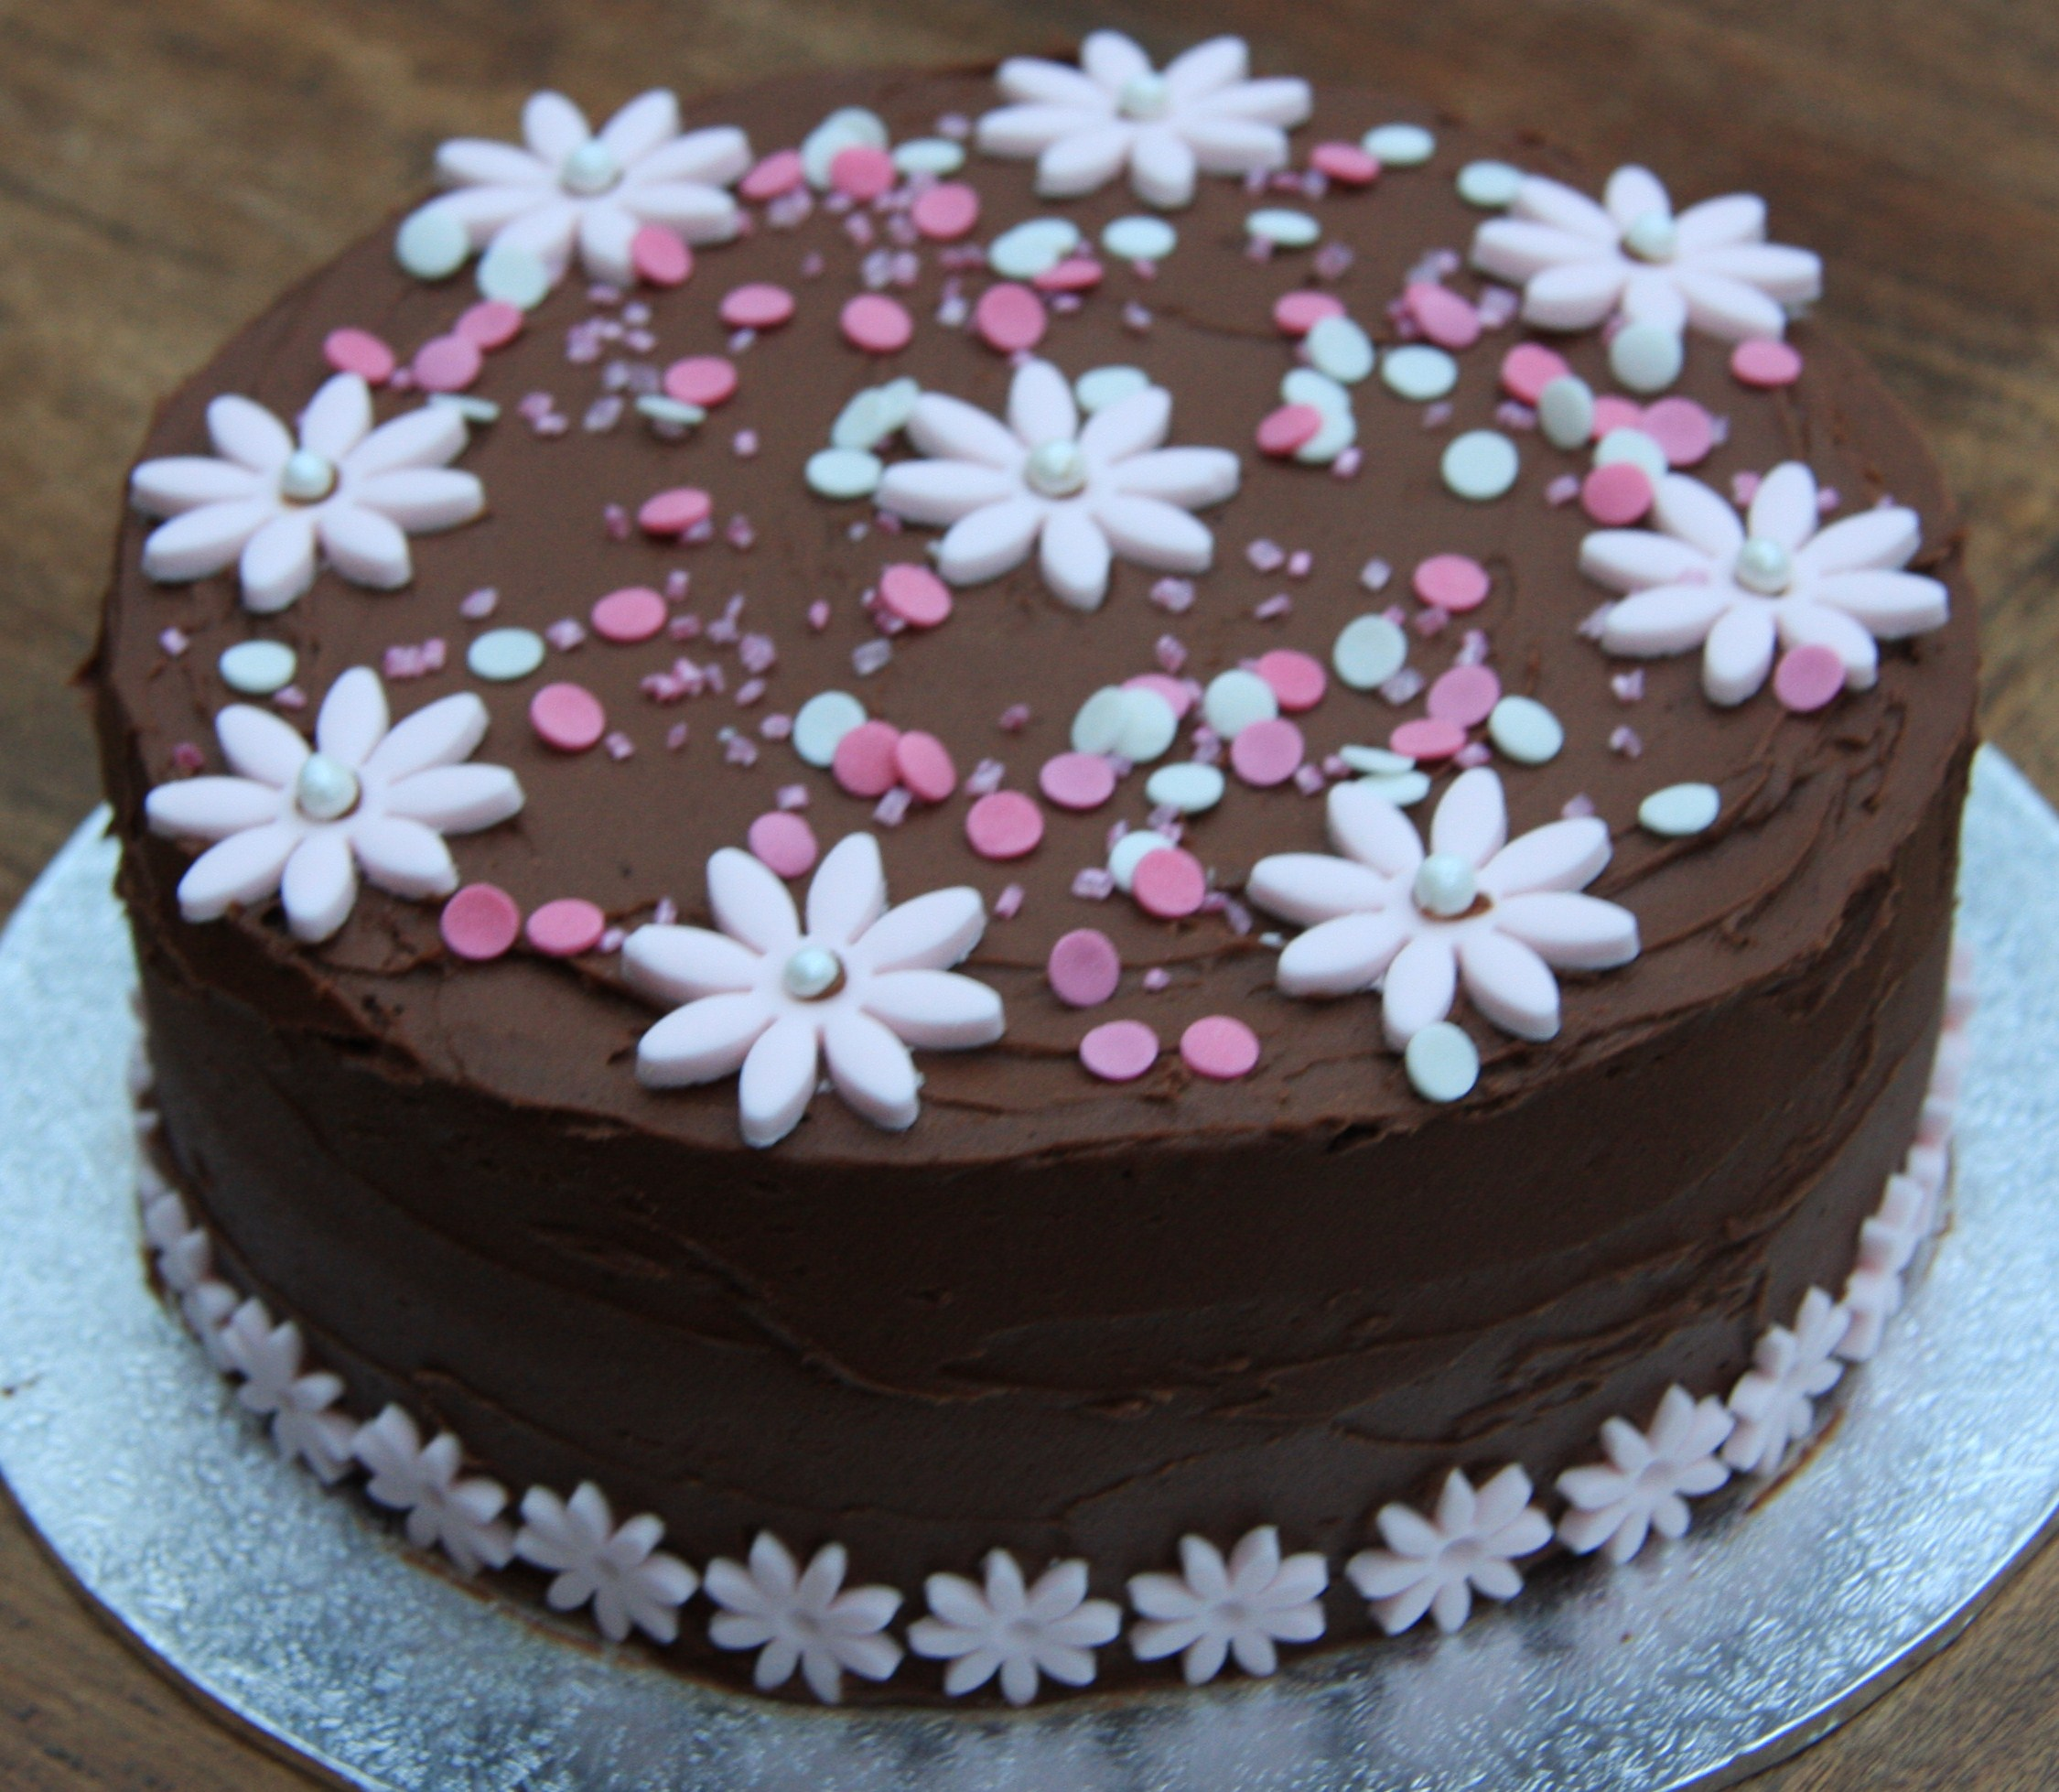 Cake Art Flowers : Chocolate and Pink Flower Birthday Cake lovinghomemade